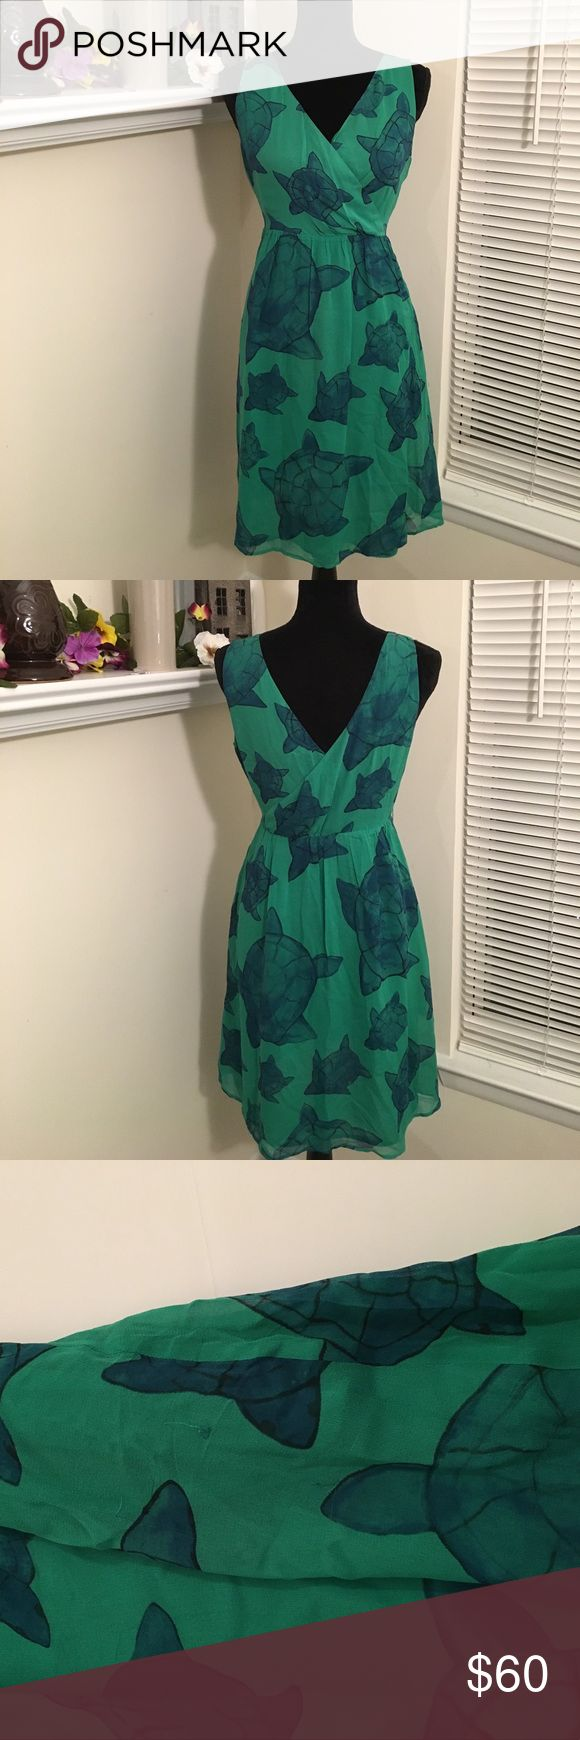 The dress how to see it both ways - Moulinette Soeurs Turtle Dress